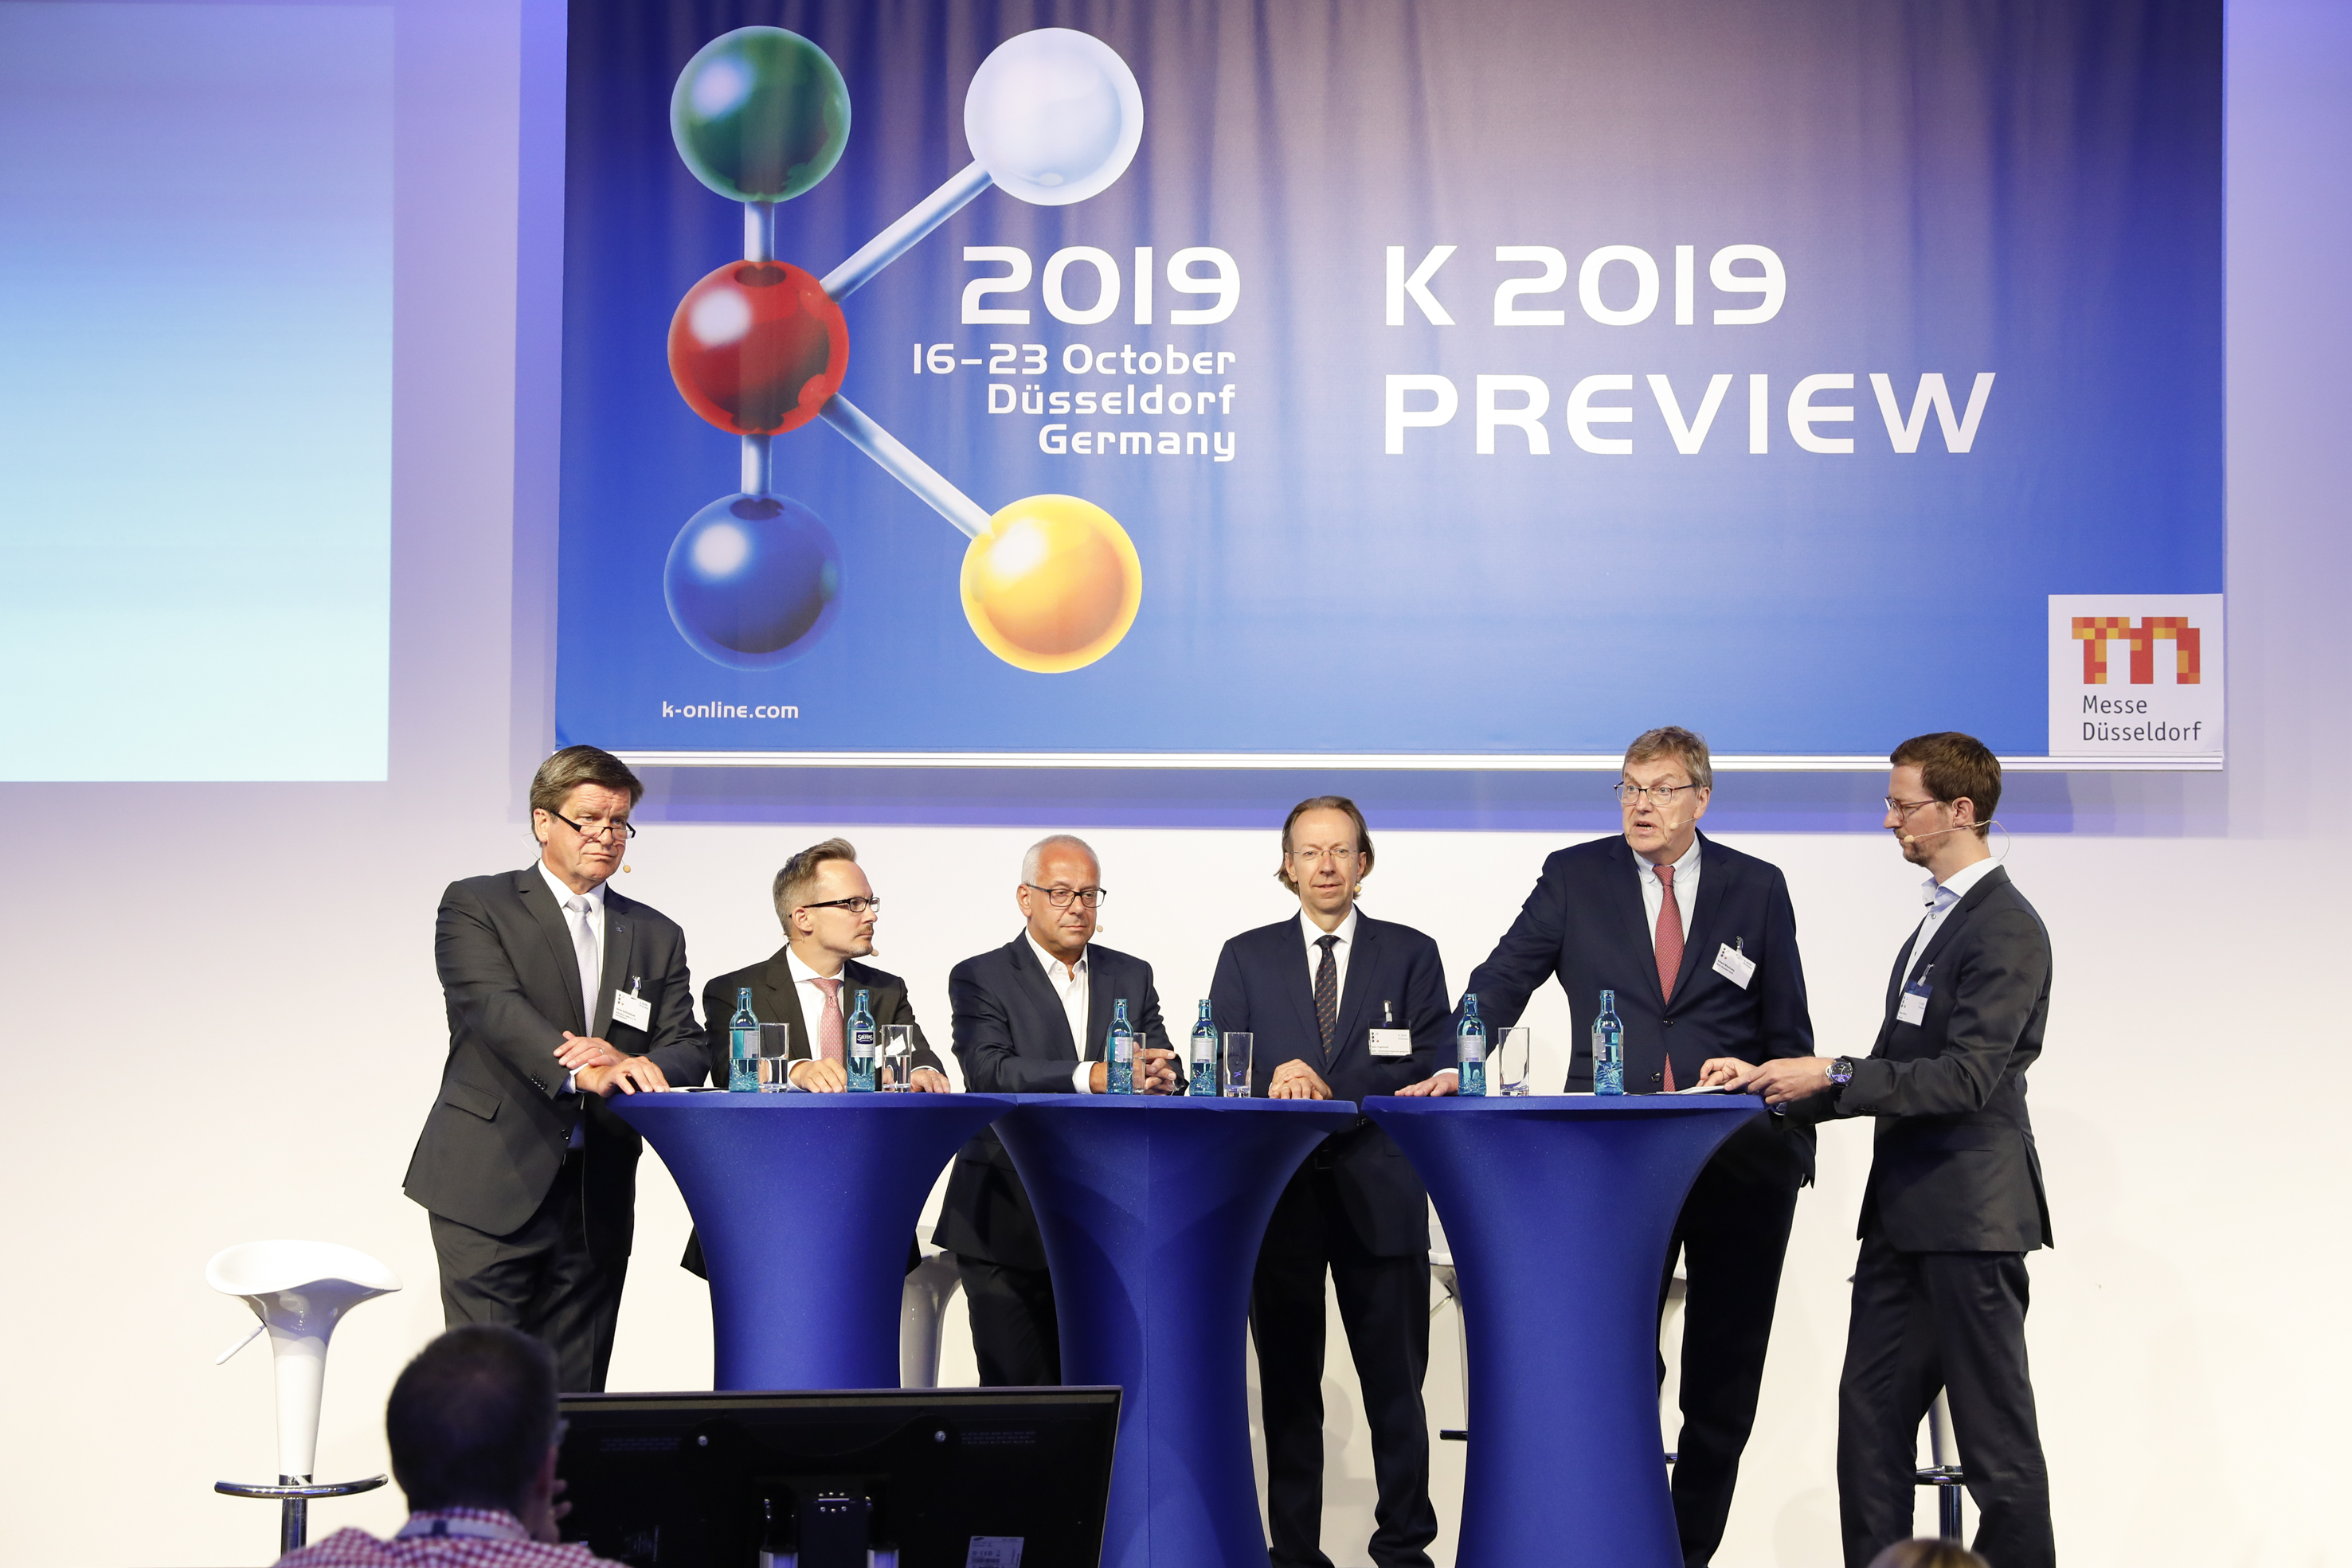 K 2019 Preview